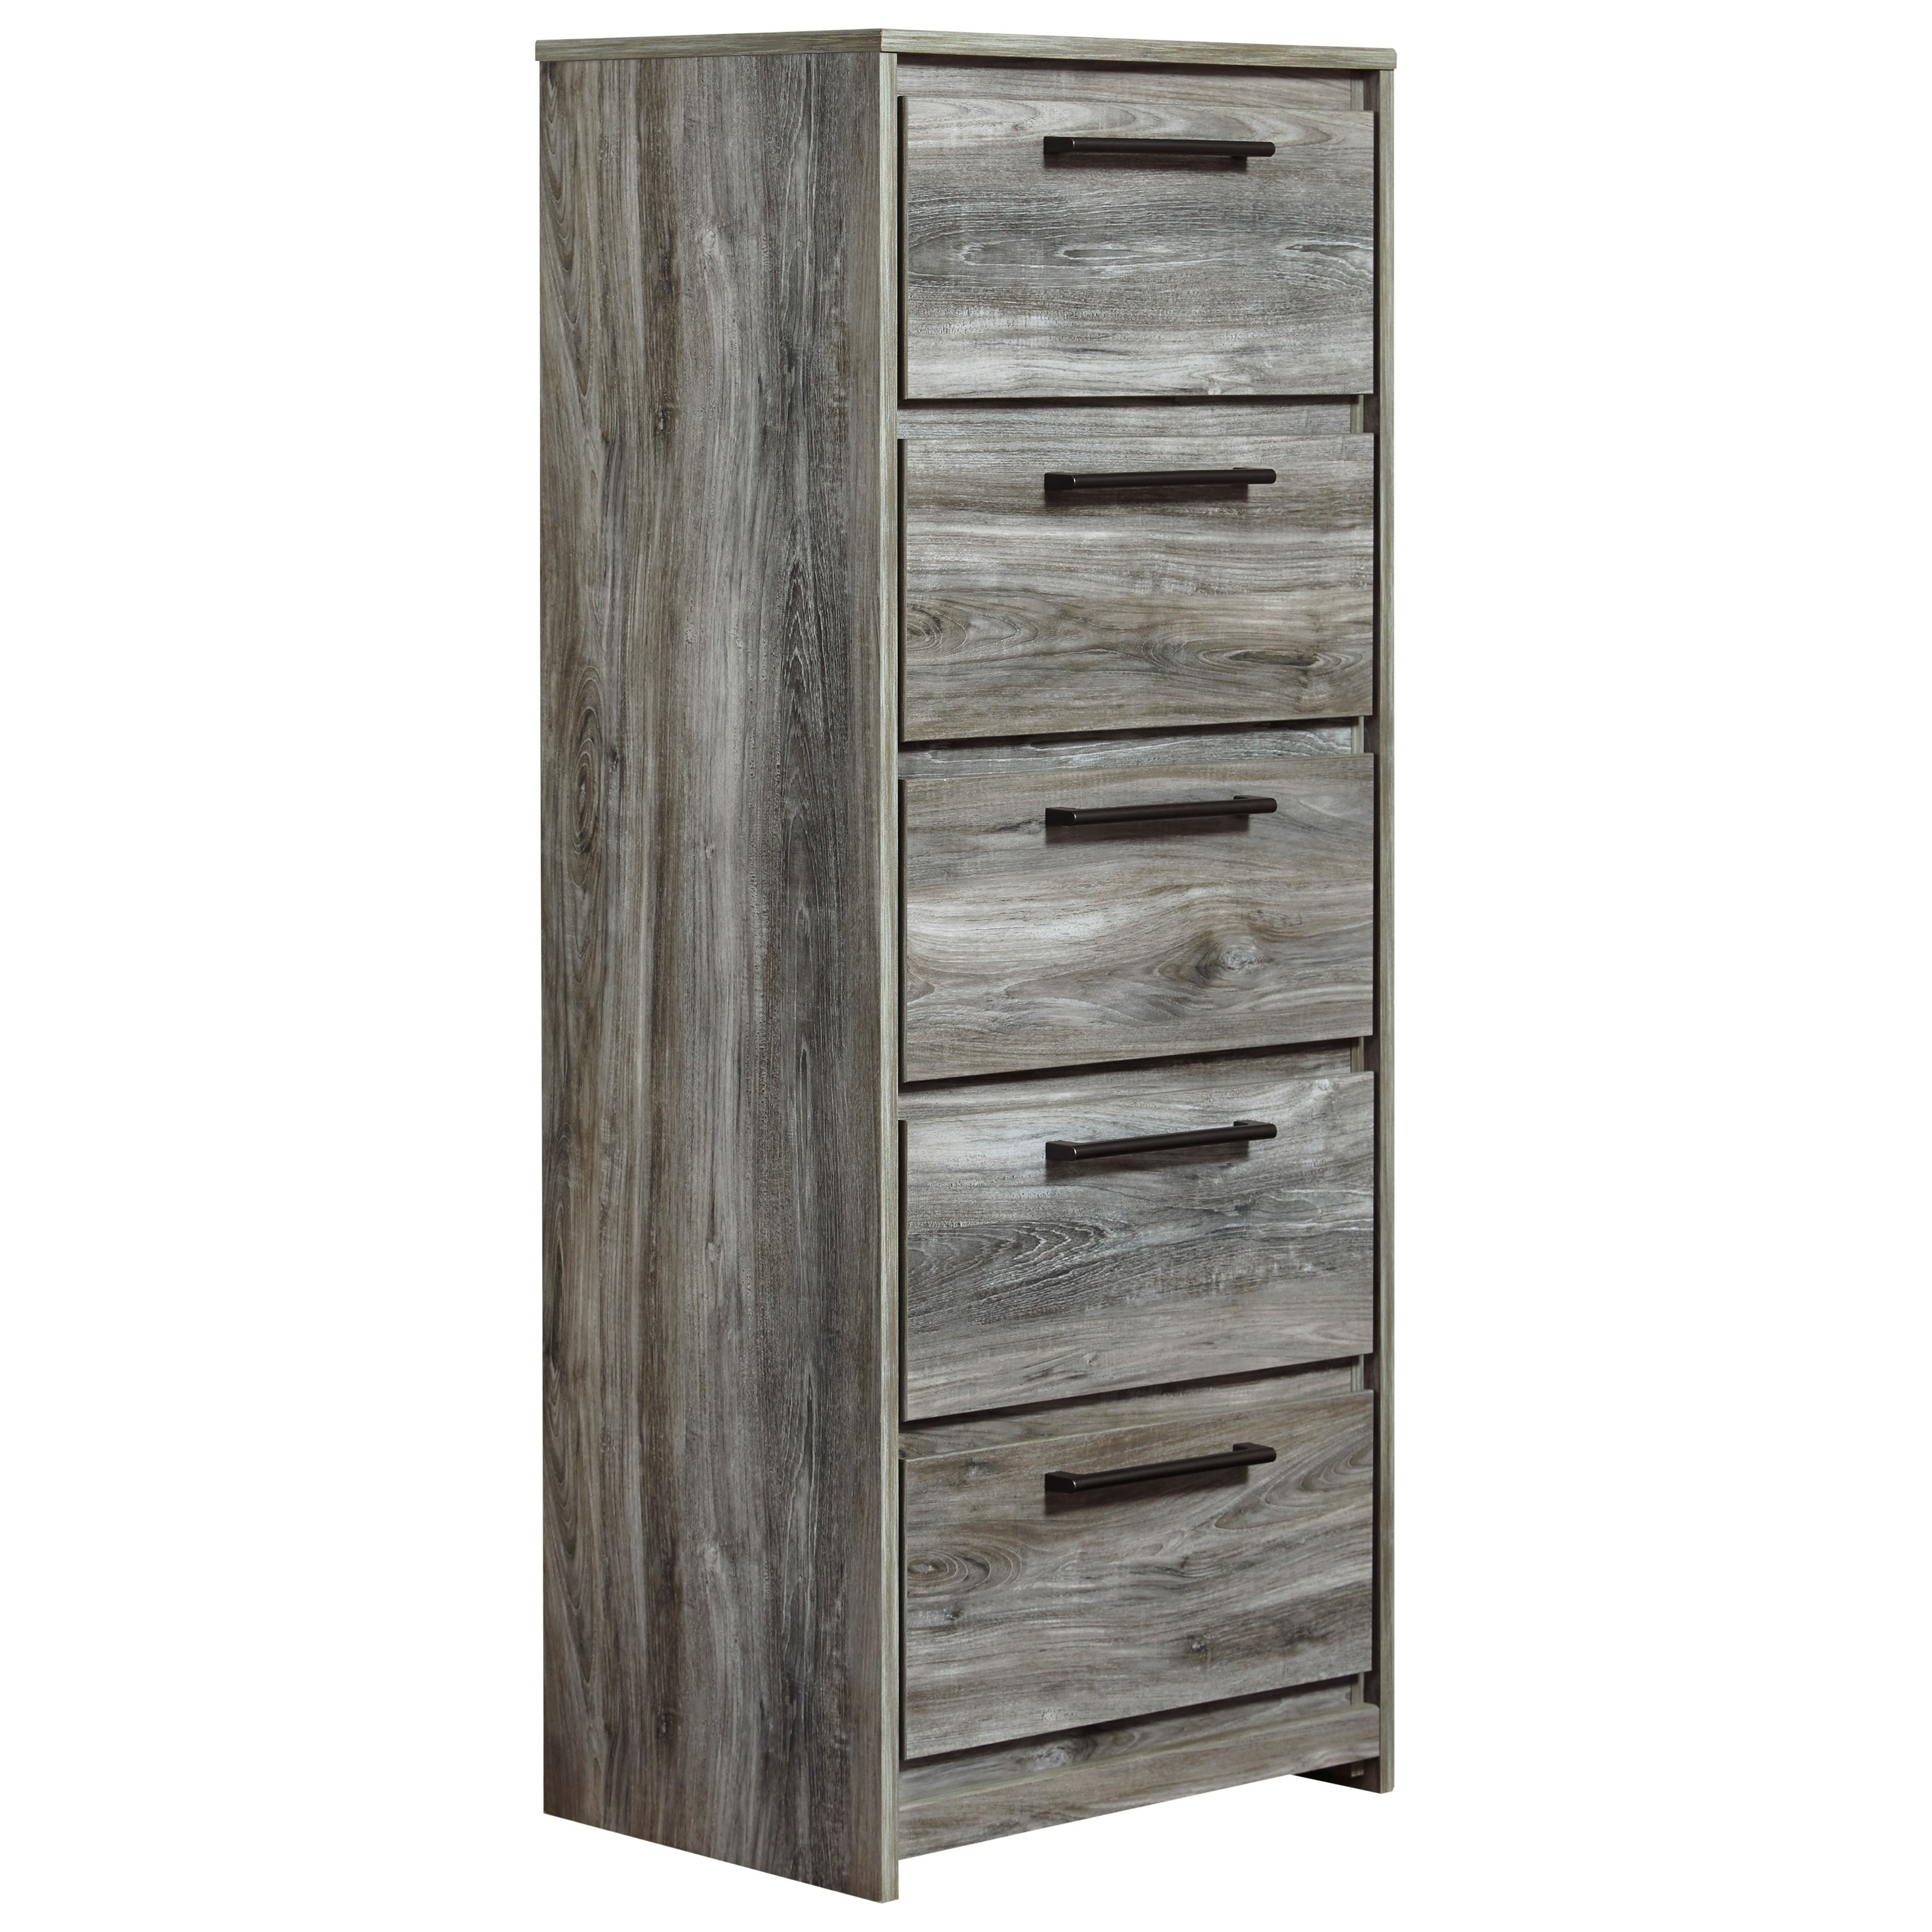 Baystorm Narrow Chest by Signature Design by Ashley at Household Furniture